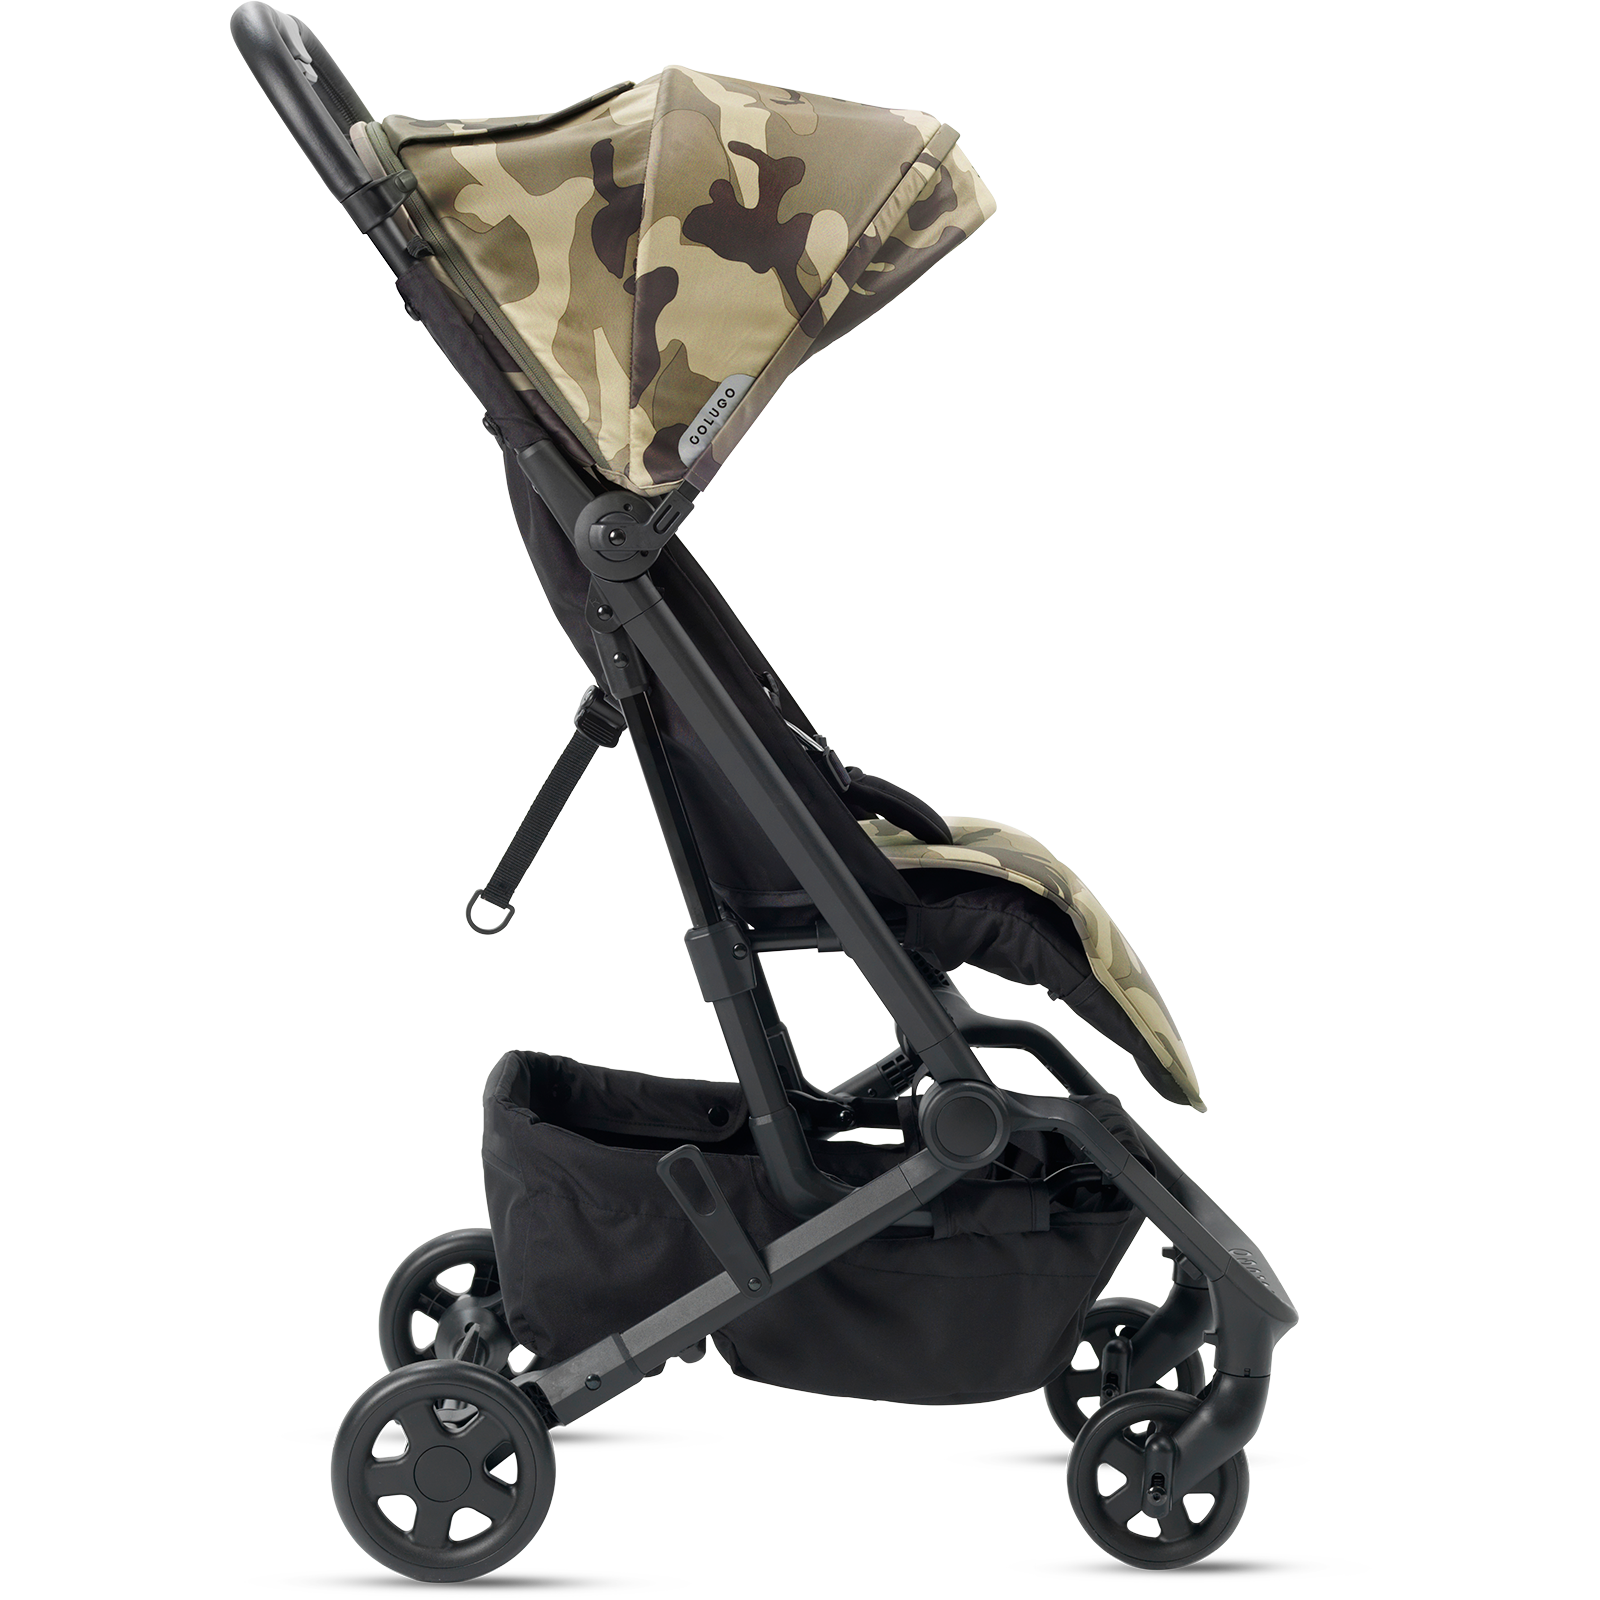 The Compact Stroller Black (With images) Compact